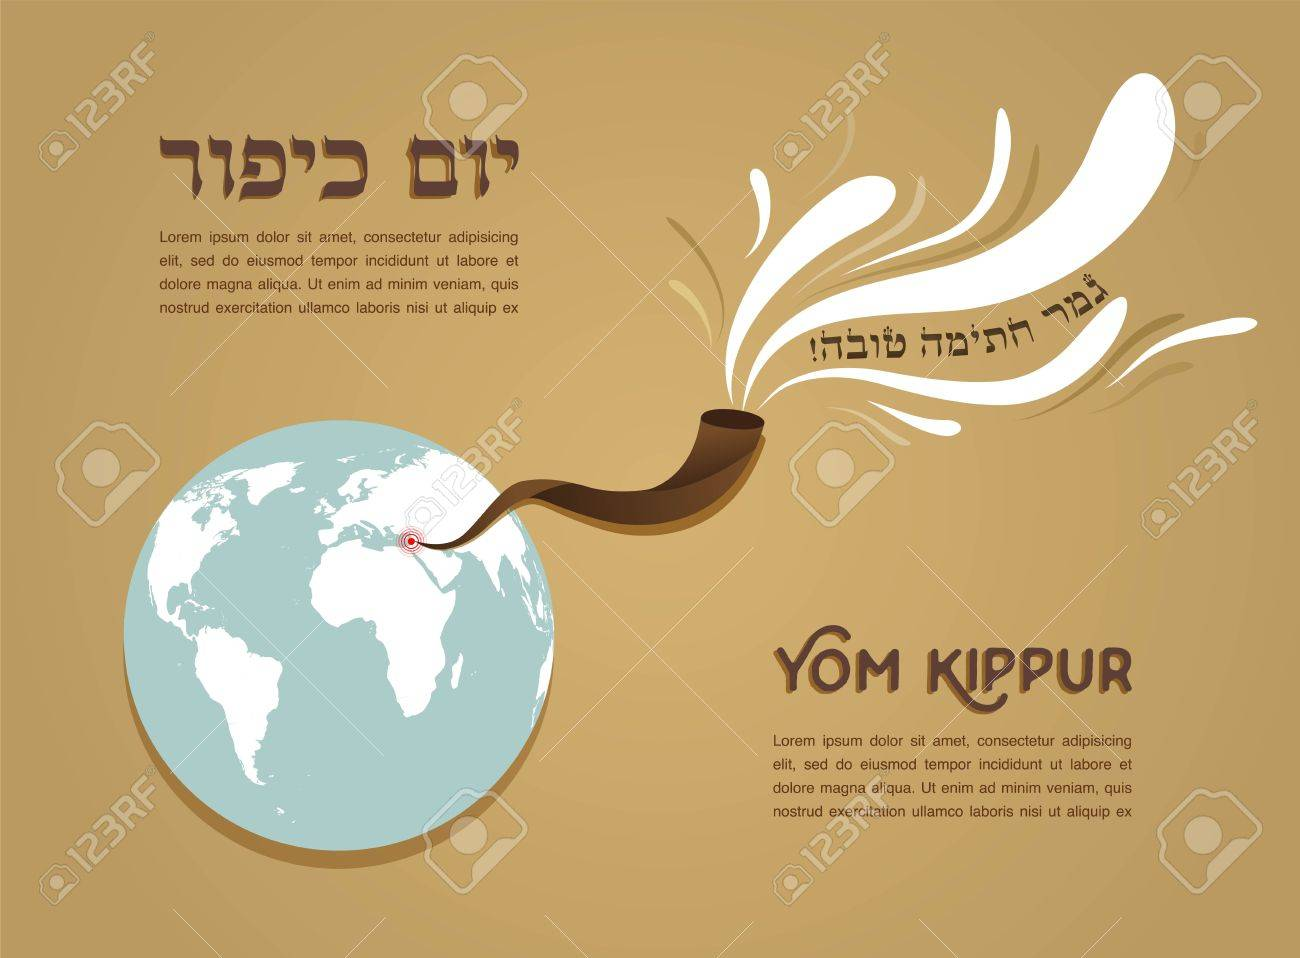 Shofar Horn Of Yom Kippur For Israeli And Jewish Holiday